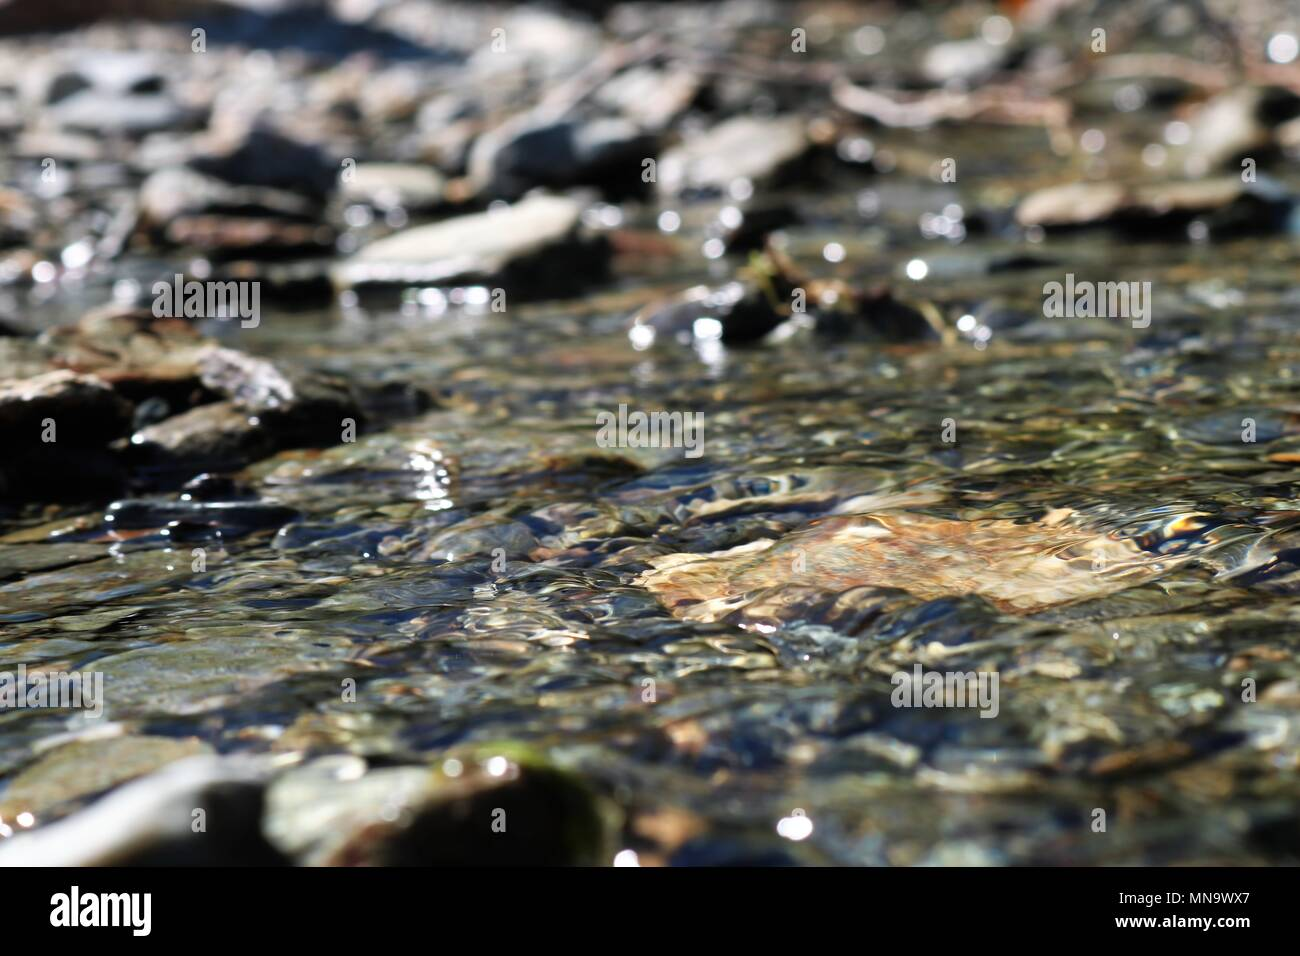 Beautiful close up of fresh clear water rippling over peddles with blurred background - Stock Image